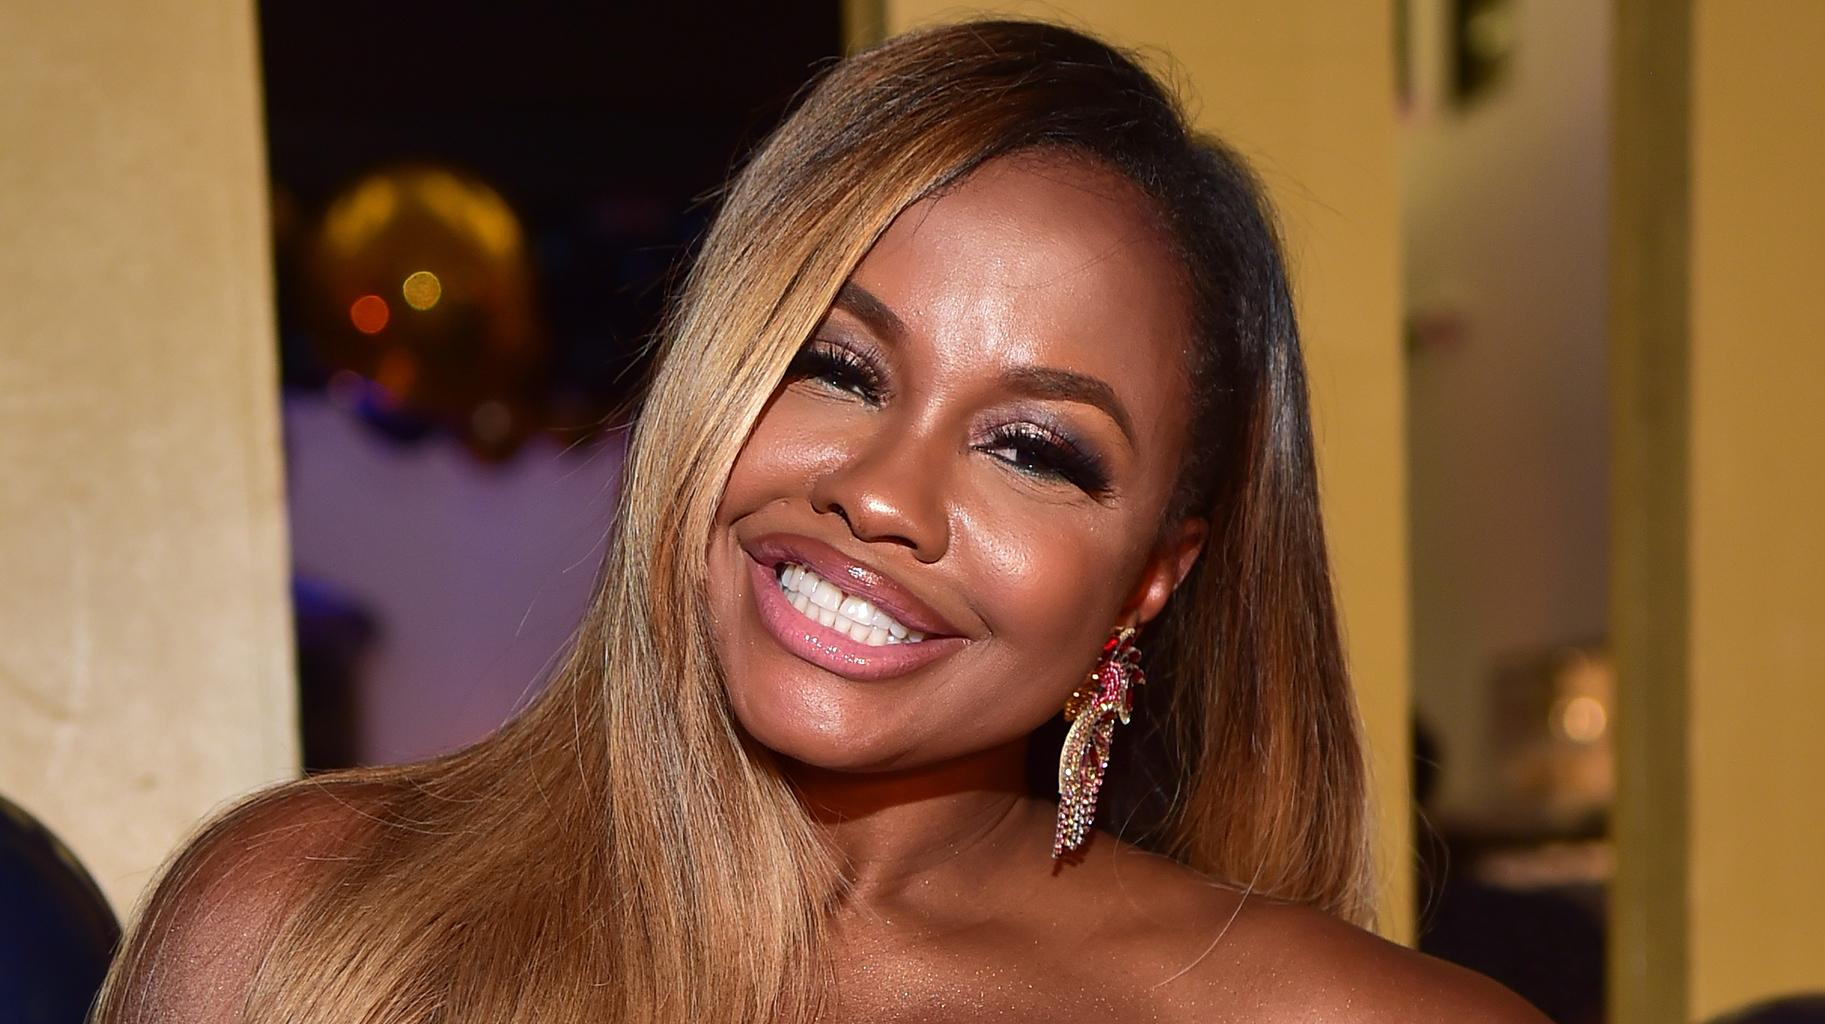 Phaedra Parks Reveals 'The Real Truth About America' - Check Out Her Video